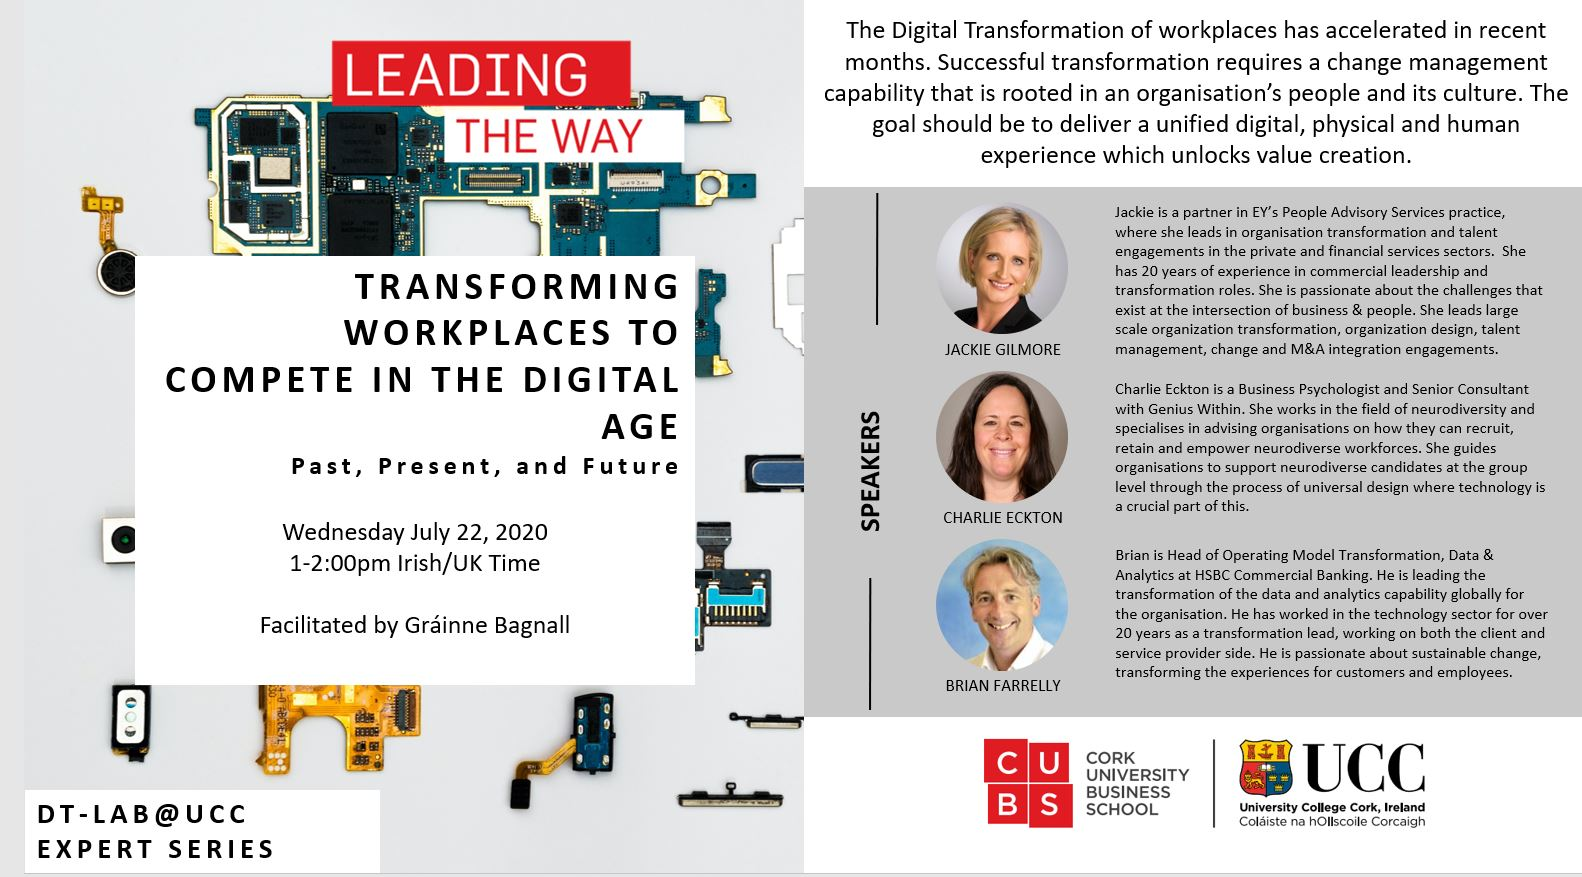 The Digital Transformation of workplaces has accelerated in recent months. Successful transformation requires a change management capability that is rooted in an organisation's people and its culture. The goal should be to deliver a unified digital, physical and human experience which unlocks value creation.  Wednesday, July 22, 2020 1-2:00pm Irish/UK Time